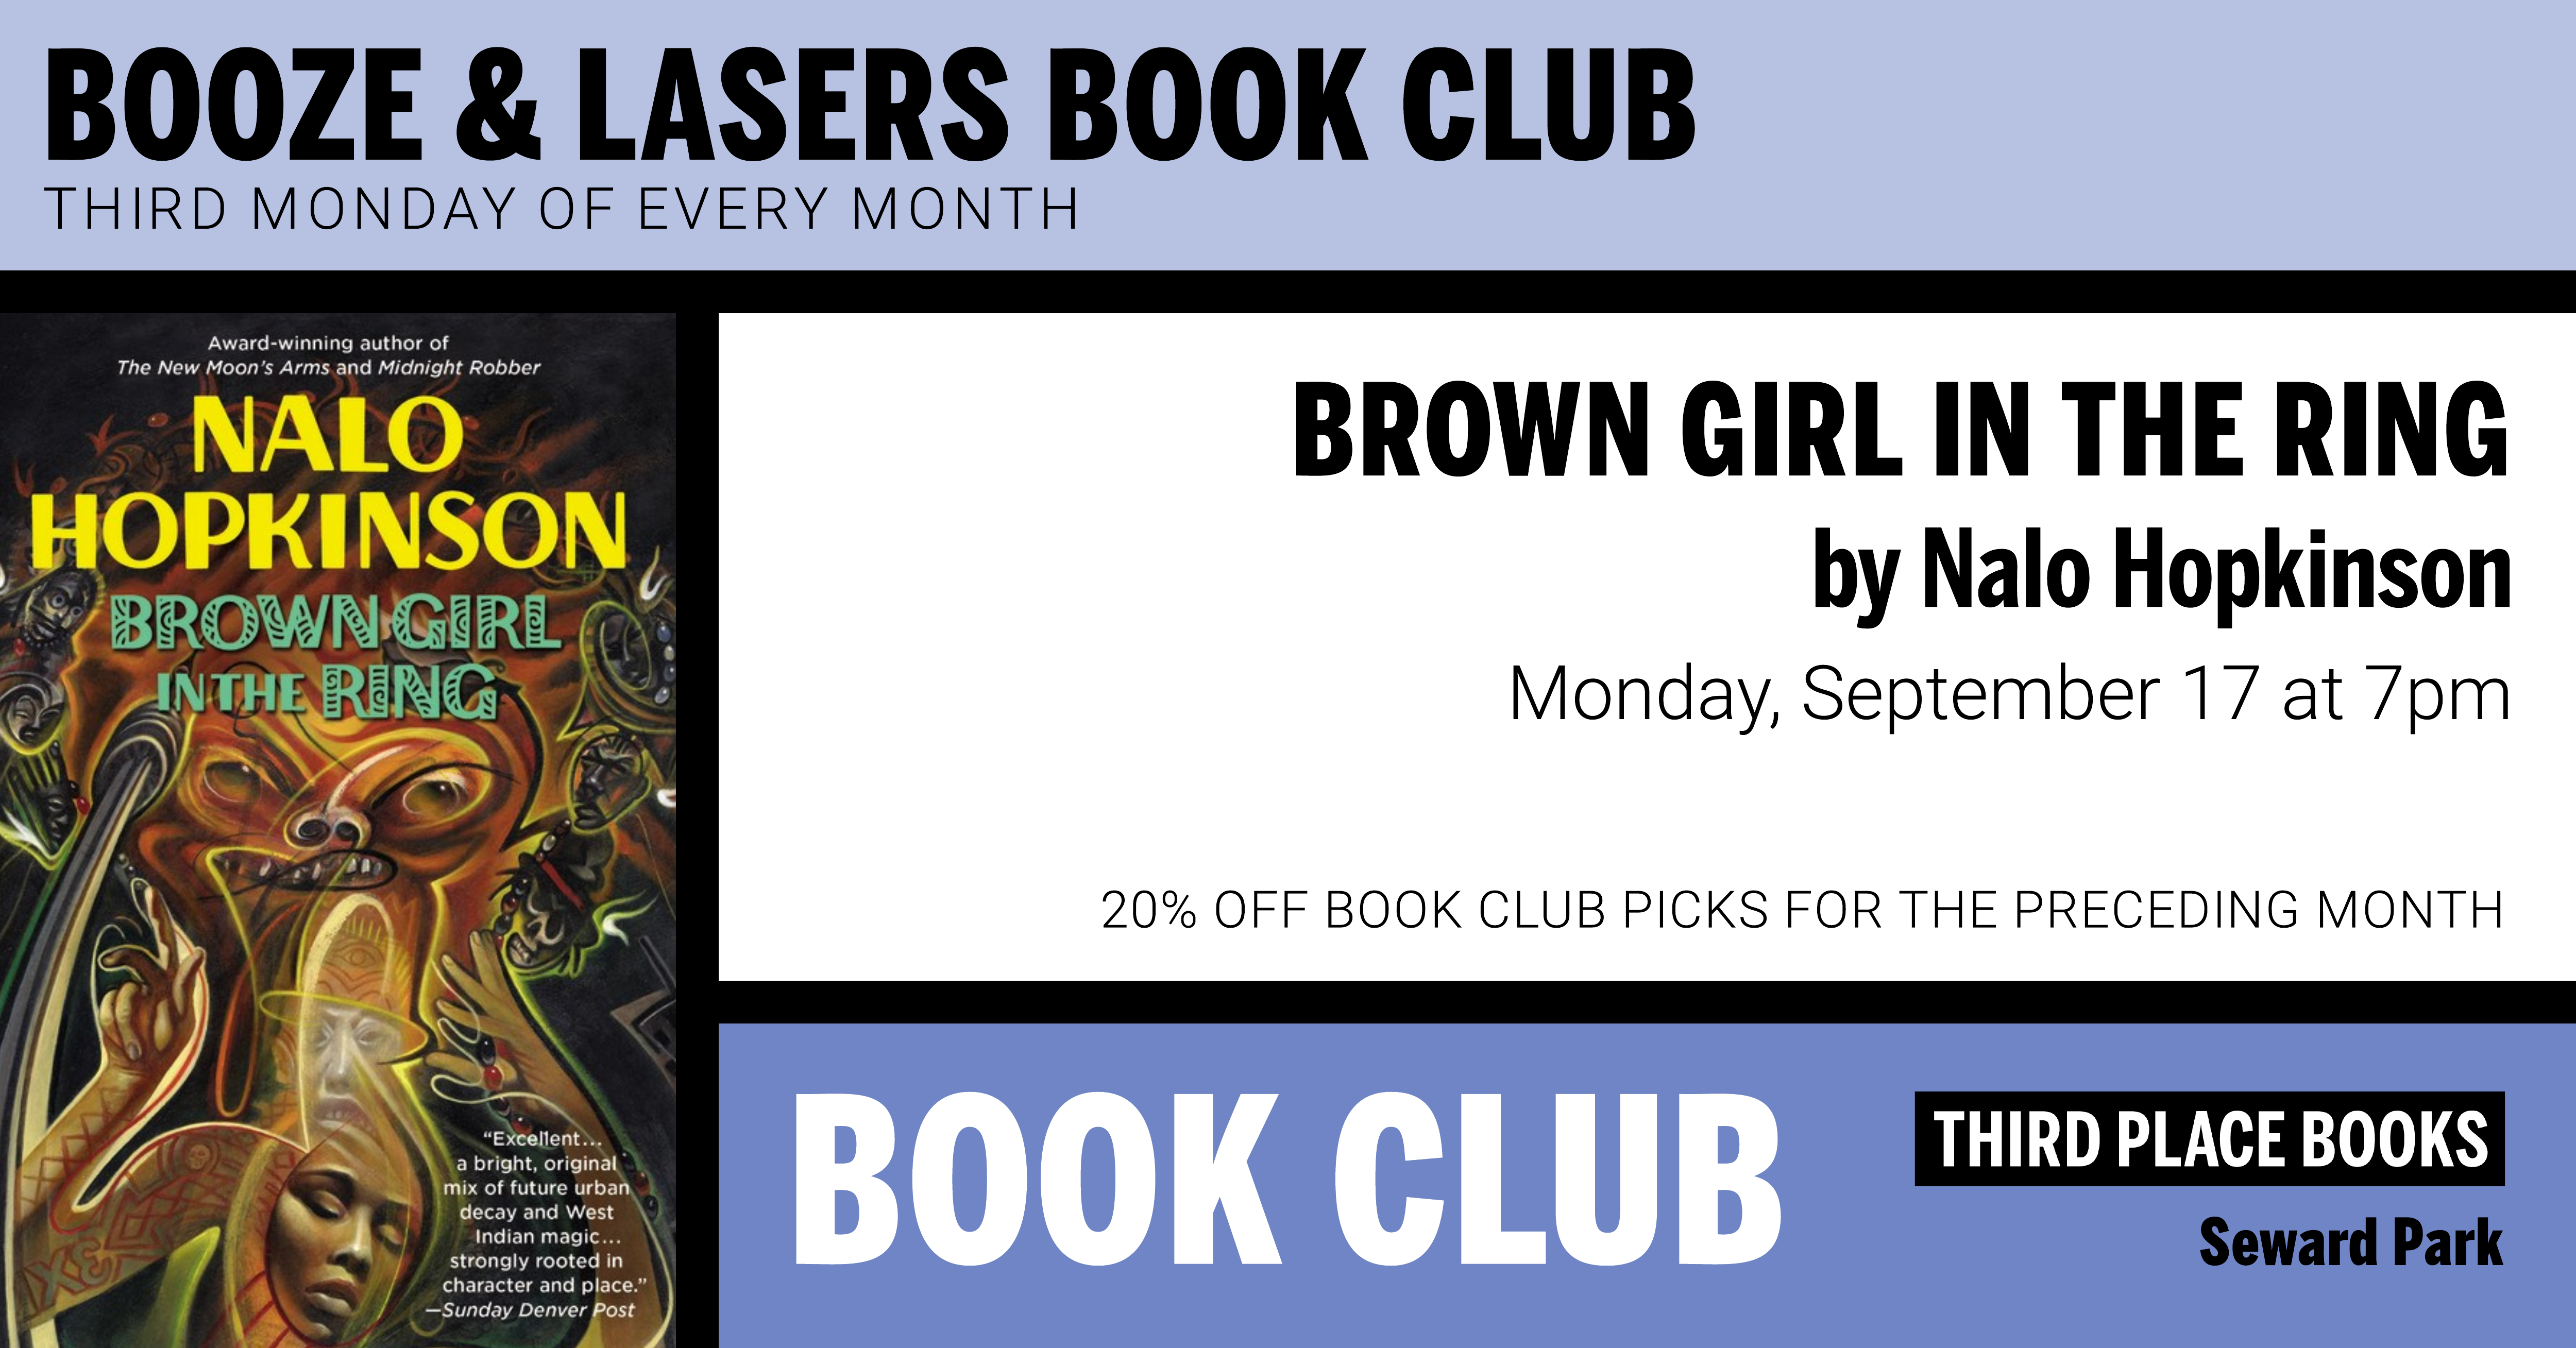 Booze & Lasers Book Club discussing Brown Girl in the Ring on Monday, September 17 at 7pm